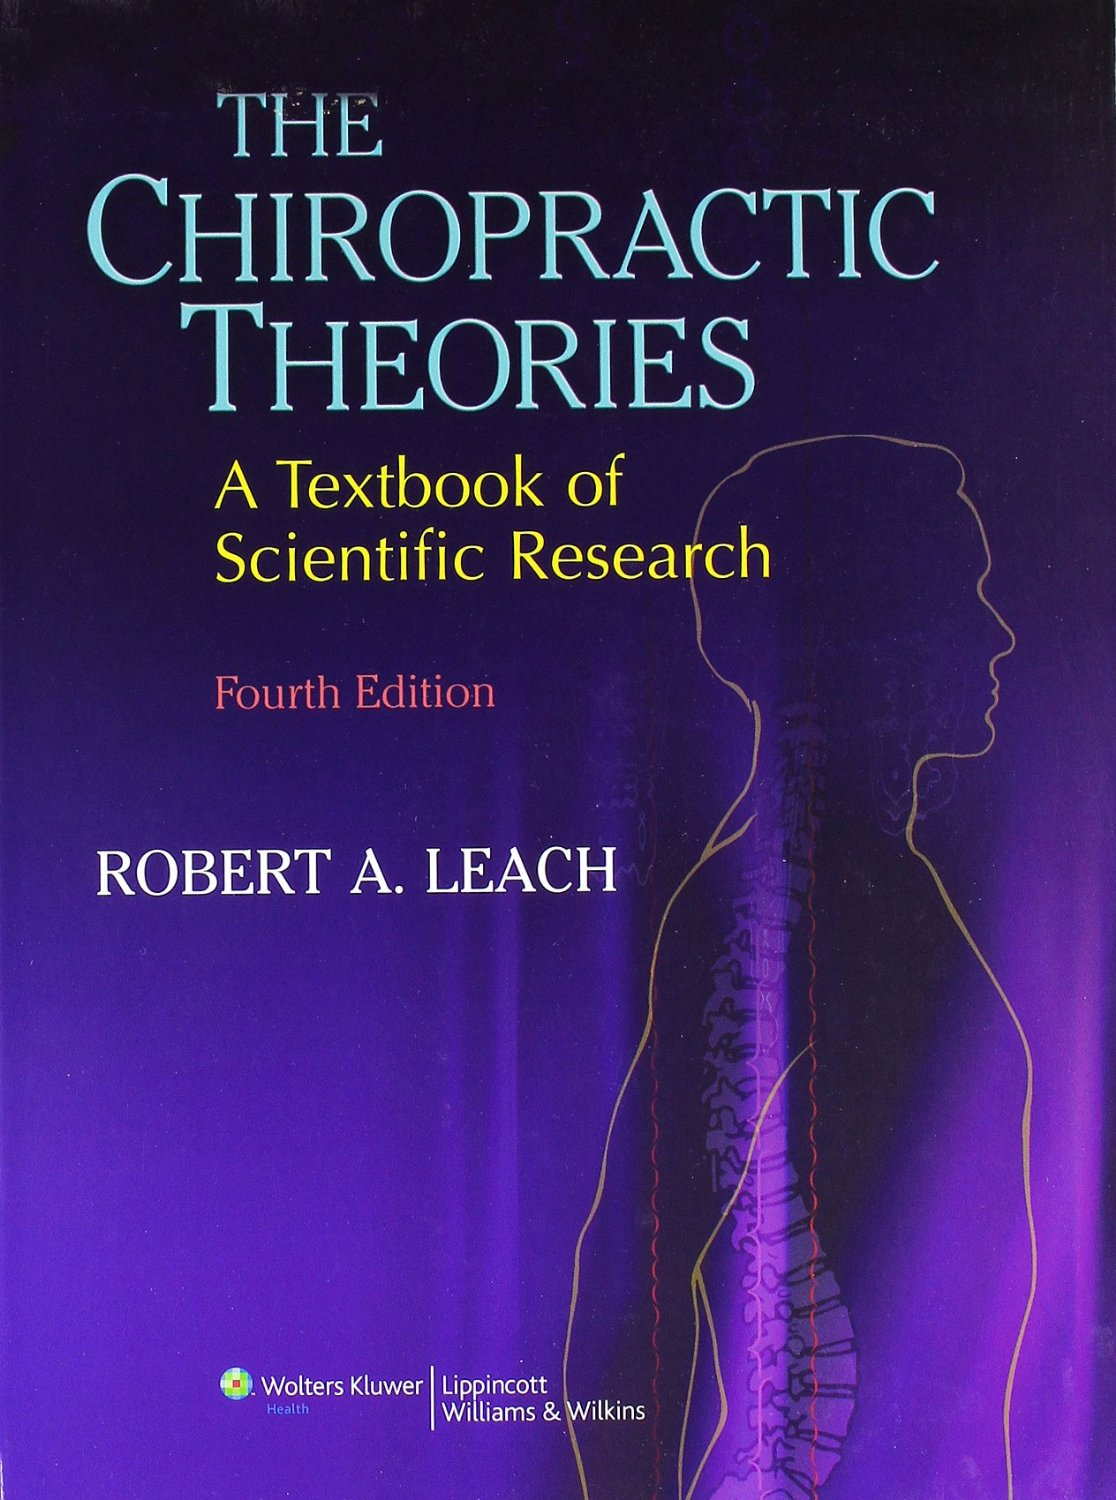 The Chiropractic Theories: A Textbook of Scientific Research